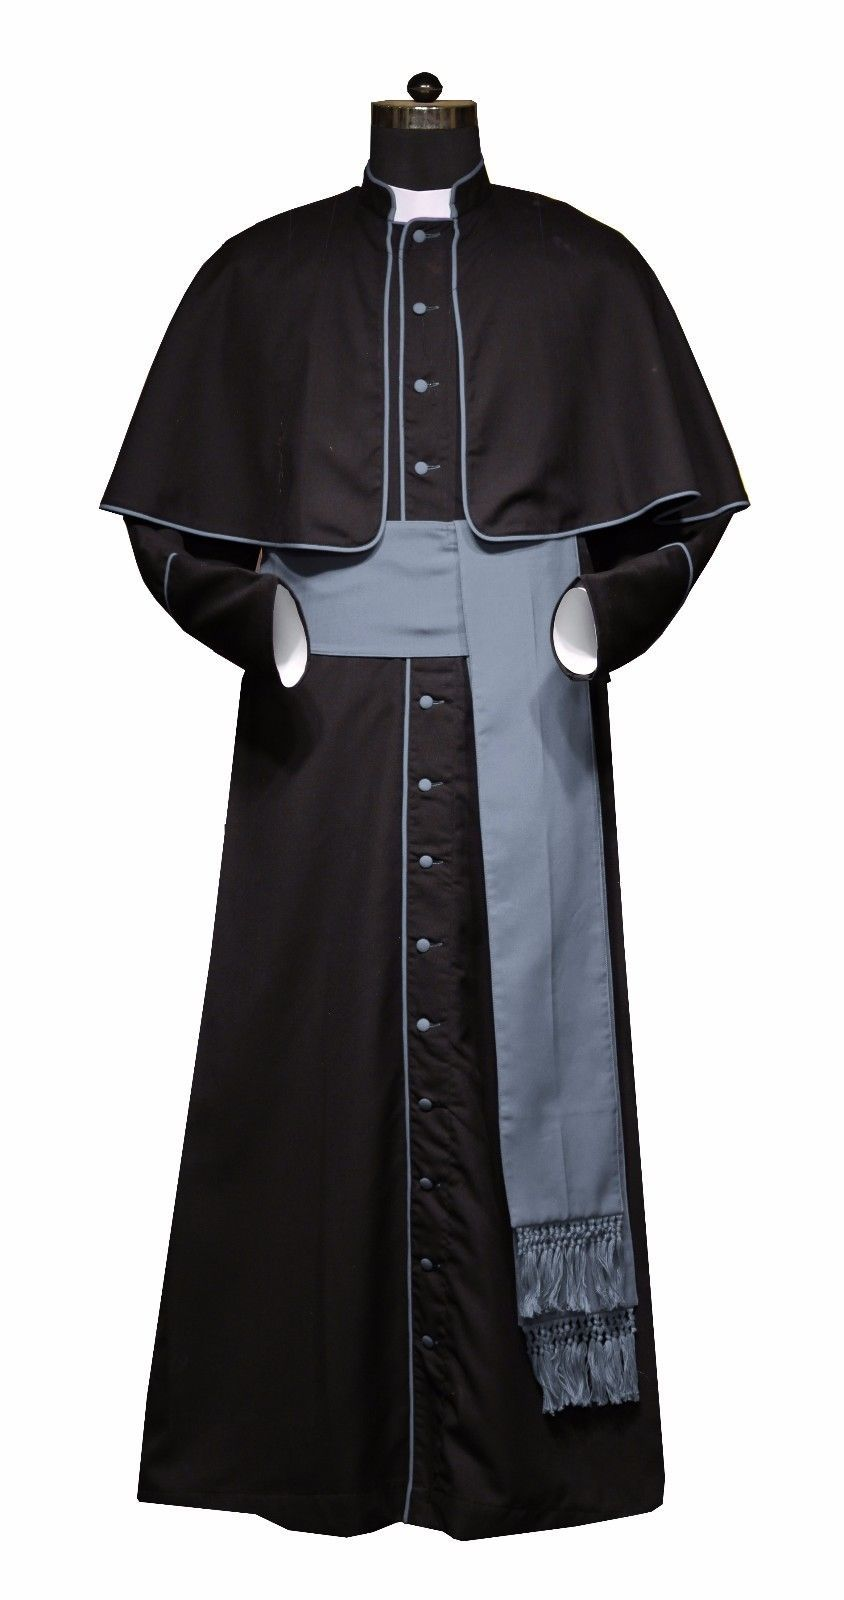 c343eed01e Black cassock for clergy priests   Black cassock with Grey trims   attached  cape